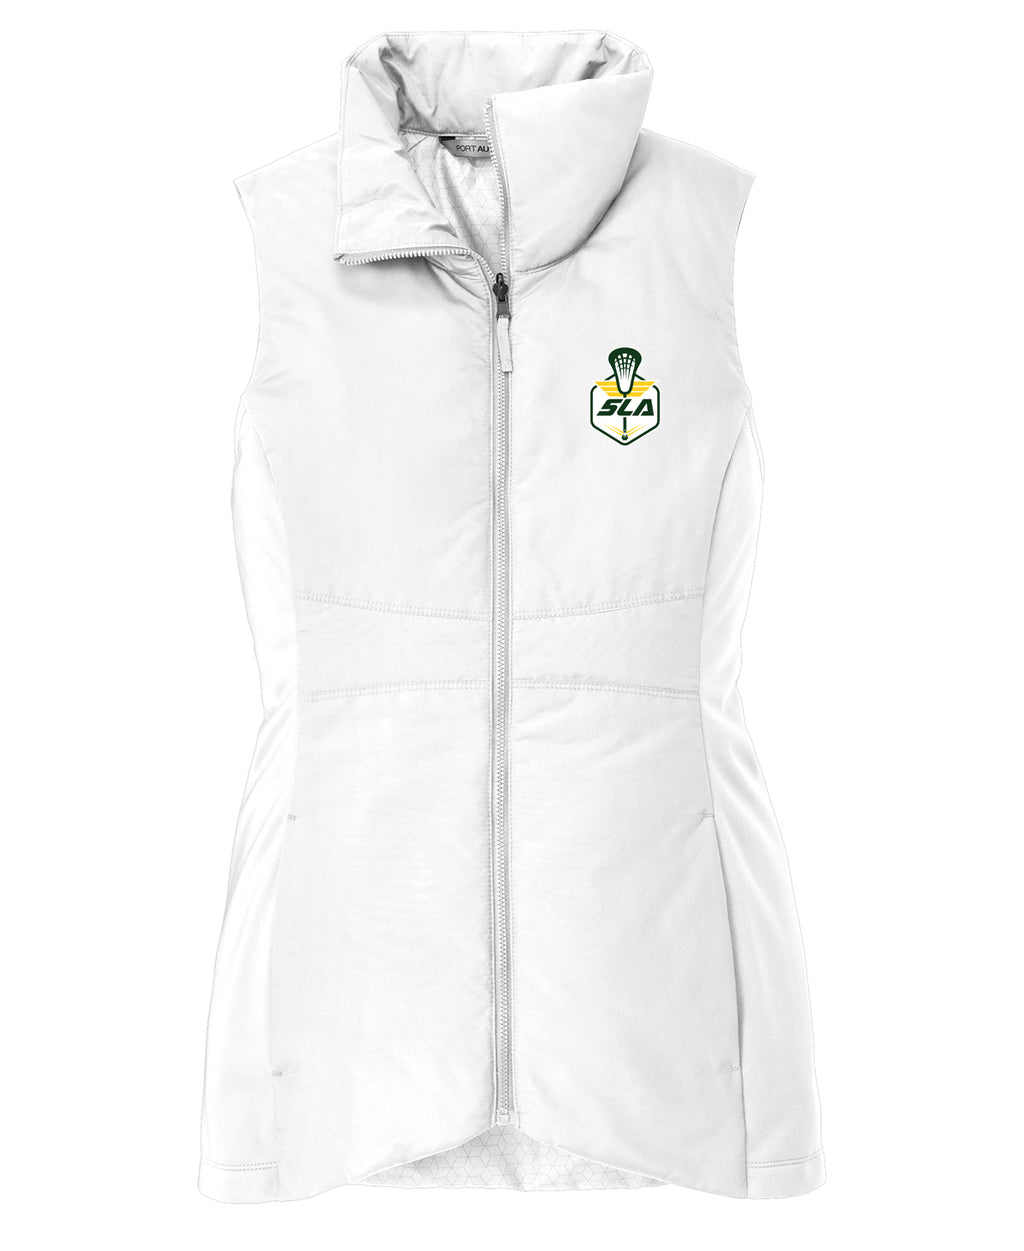 Sycamore Lacrosse Association Women's White Vest